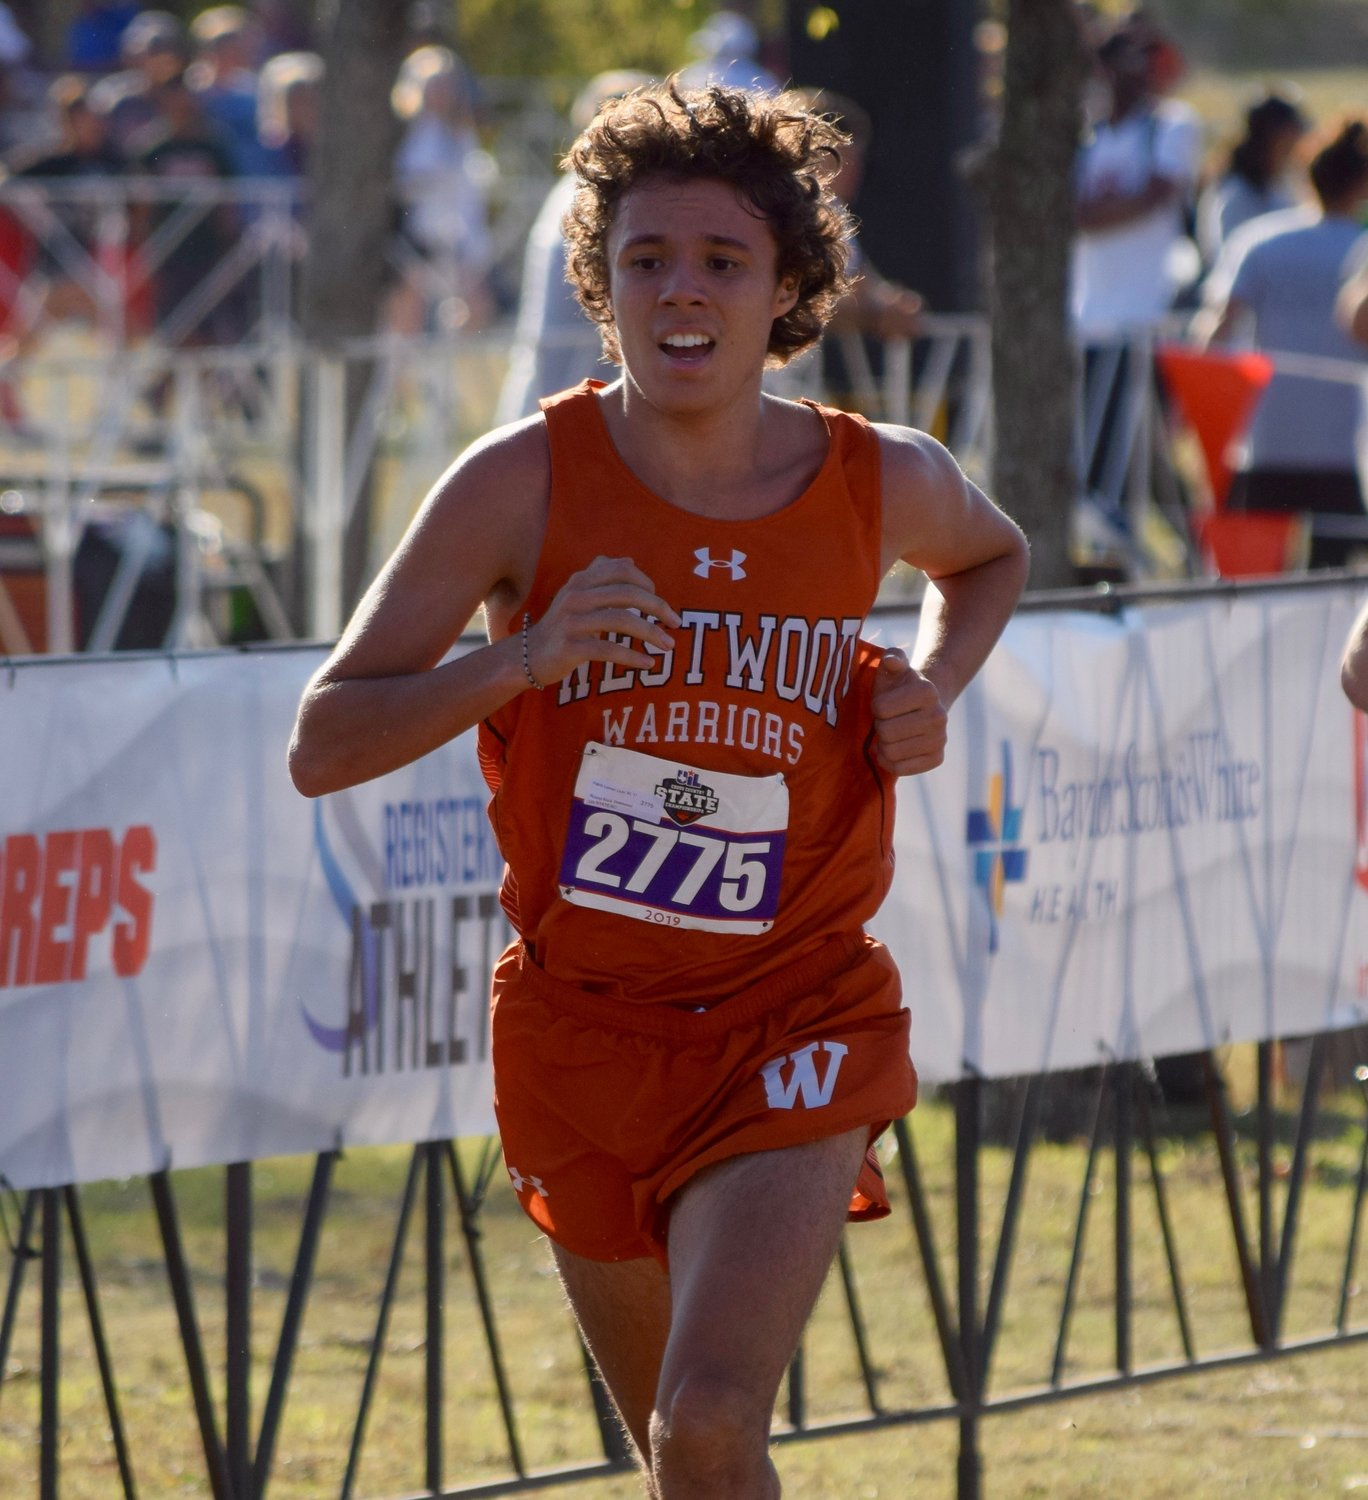 Westwood runner Pablo Lomeli Lluis finished with a time of 15:57.45 at the state cross country meet Saturday at Old Settlers Park in Round Rock.